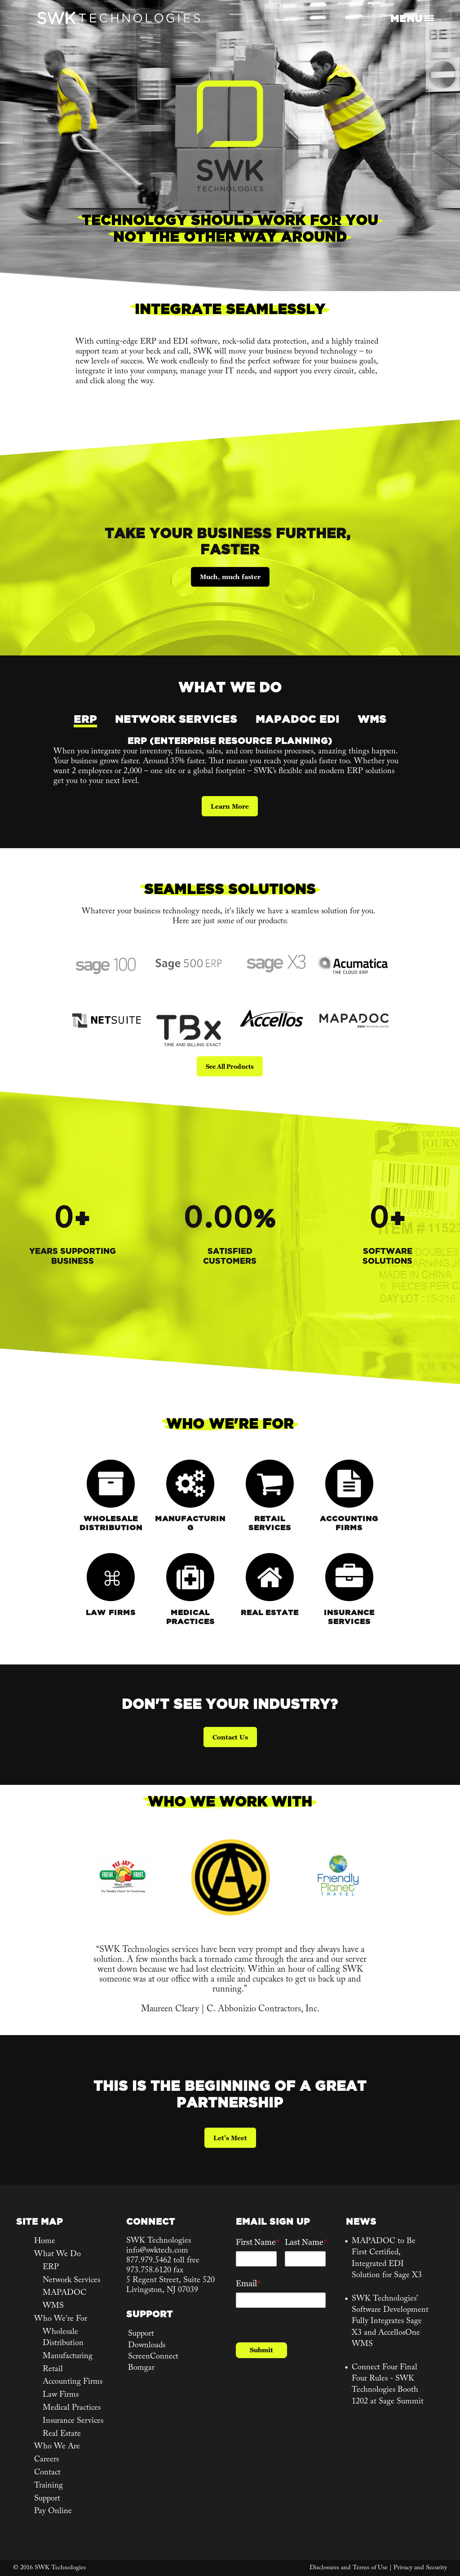 SWK Competitors, Revenue and Employees - Owler Company Profile